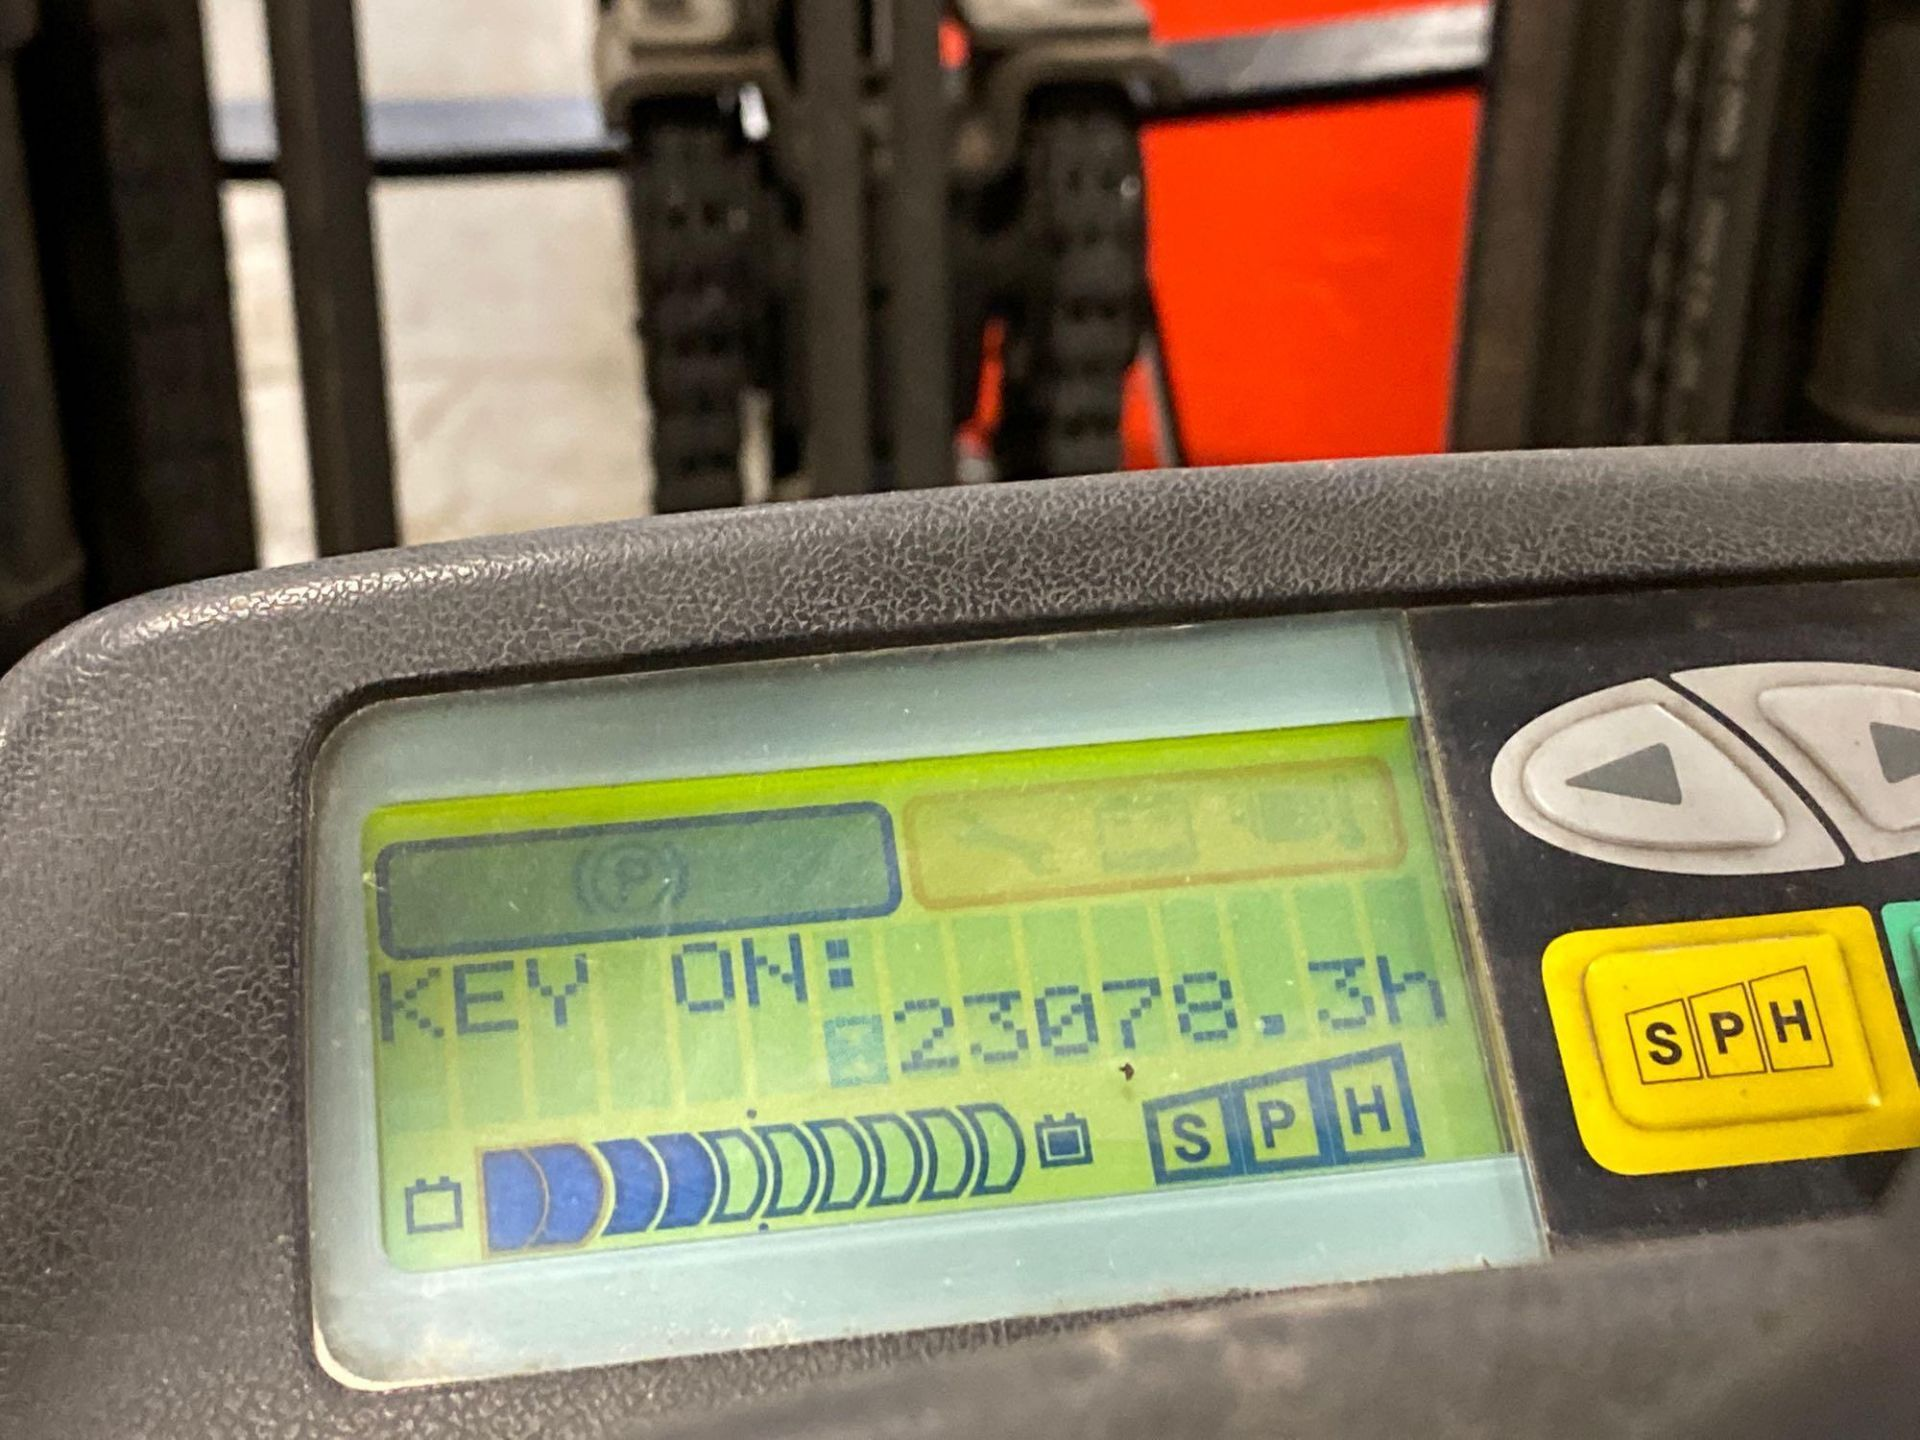 """TOYOTA 7FBCU25 ELECTRIC FORKLIFT, 5,000 LB CAPACITY, 170.5"""" HEIGHT CAPACITY - Image 17 of 20"""